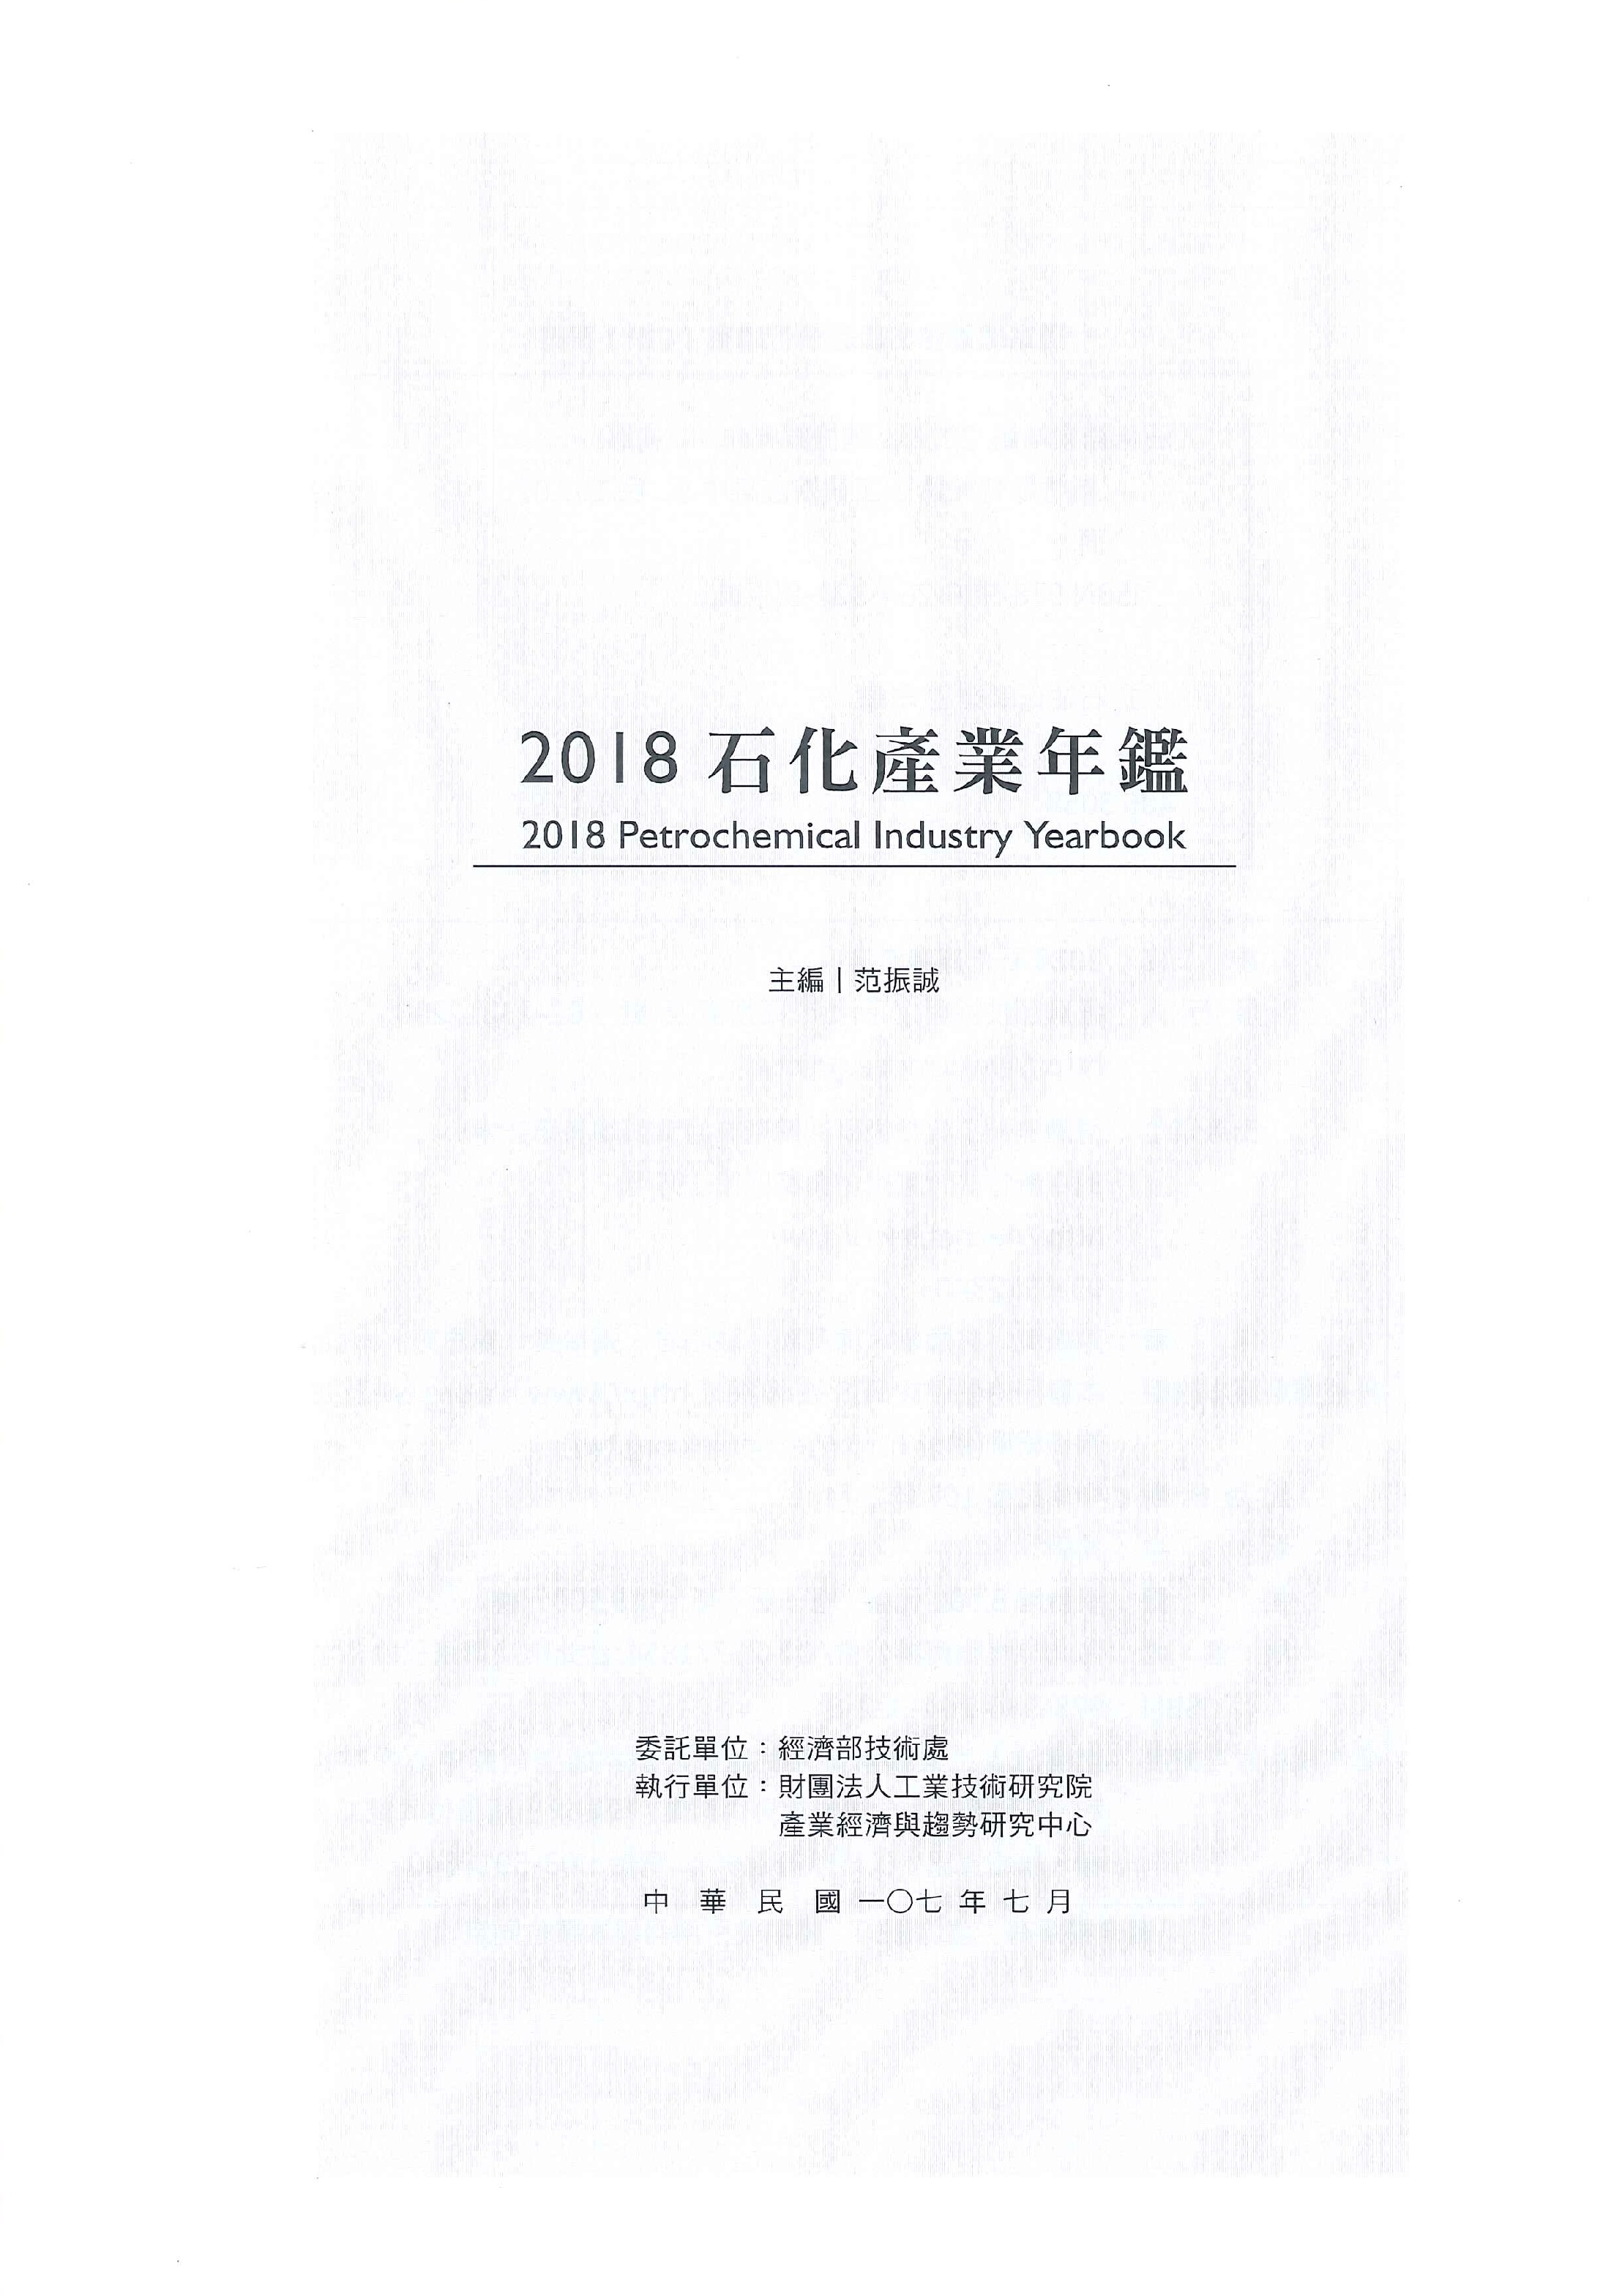 石化產業年鑑=Petrochemical industry yearbook